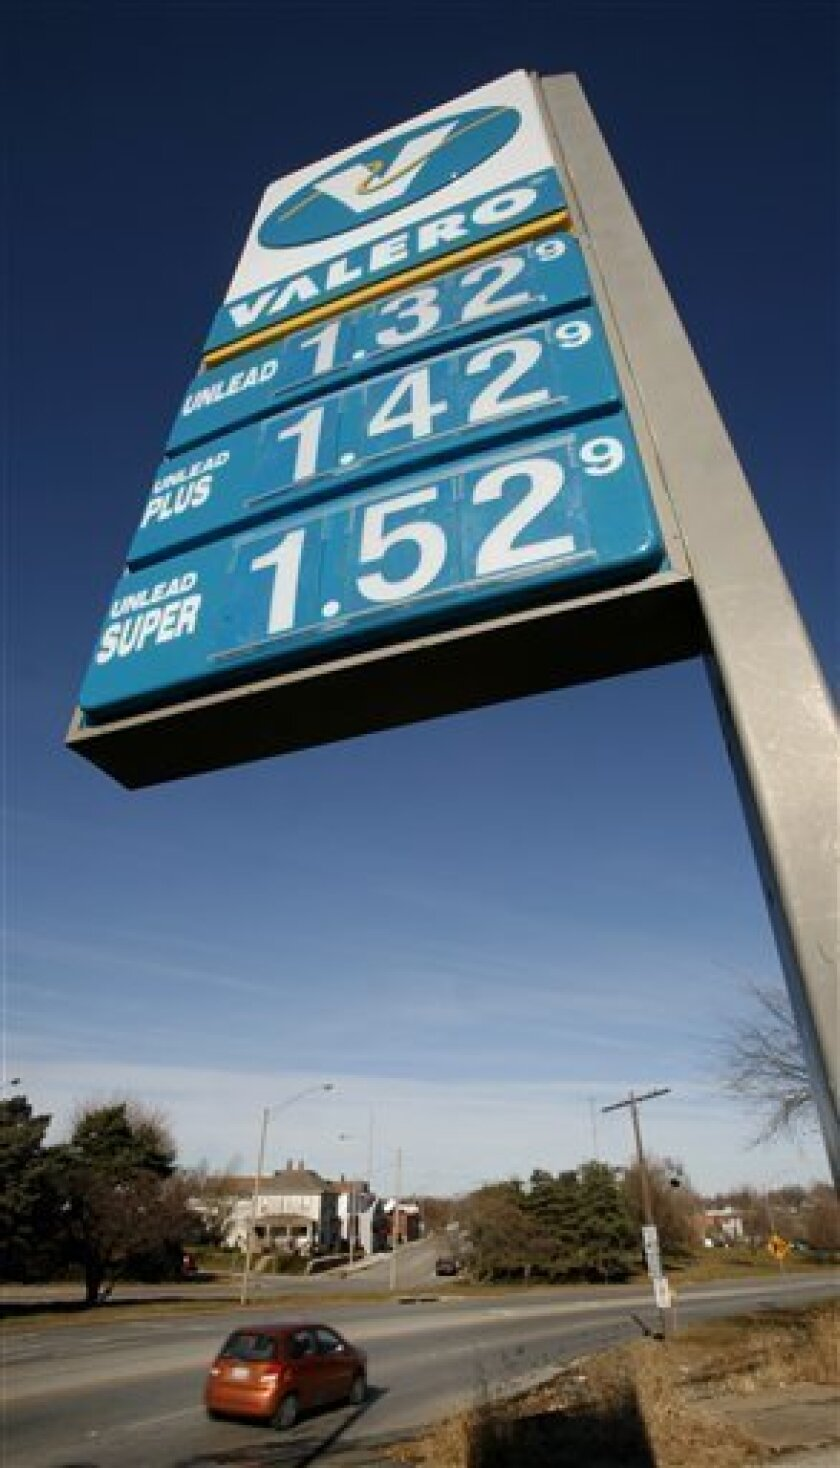 Regular unleaded gasoline sells for $1.32.9 per gallon at a Valero station Thursday, Dec. 4, 2008, in Independence, Mo. Average gasoline prices slipped under $1.80 a gallon as oil prices hit a four year low falling below $44 a barrel. (AP Photo/Charlie Riedel)